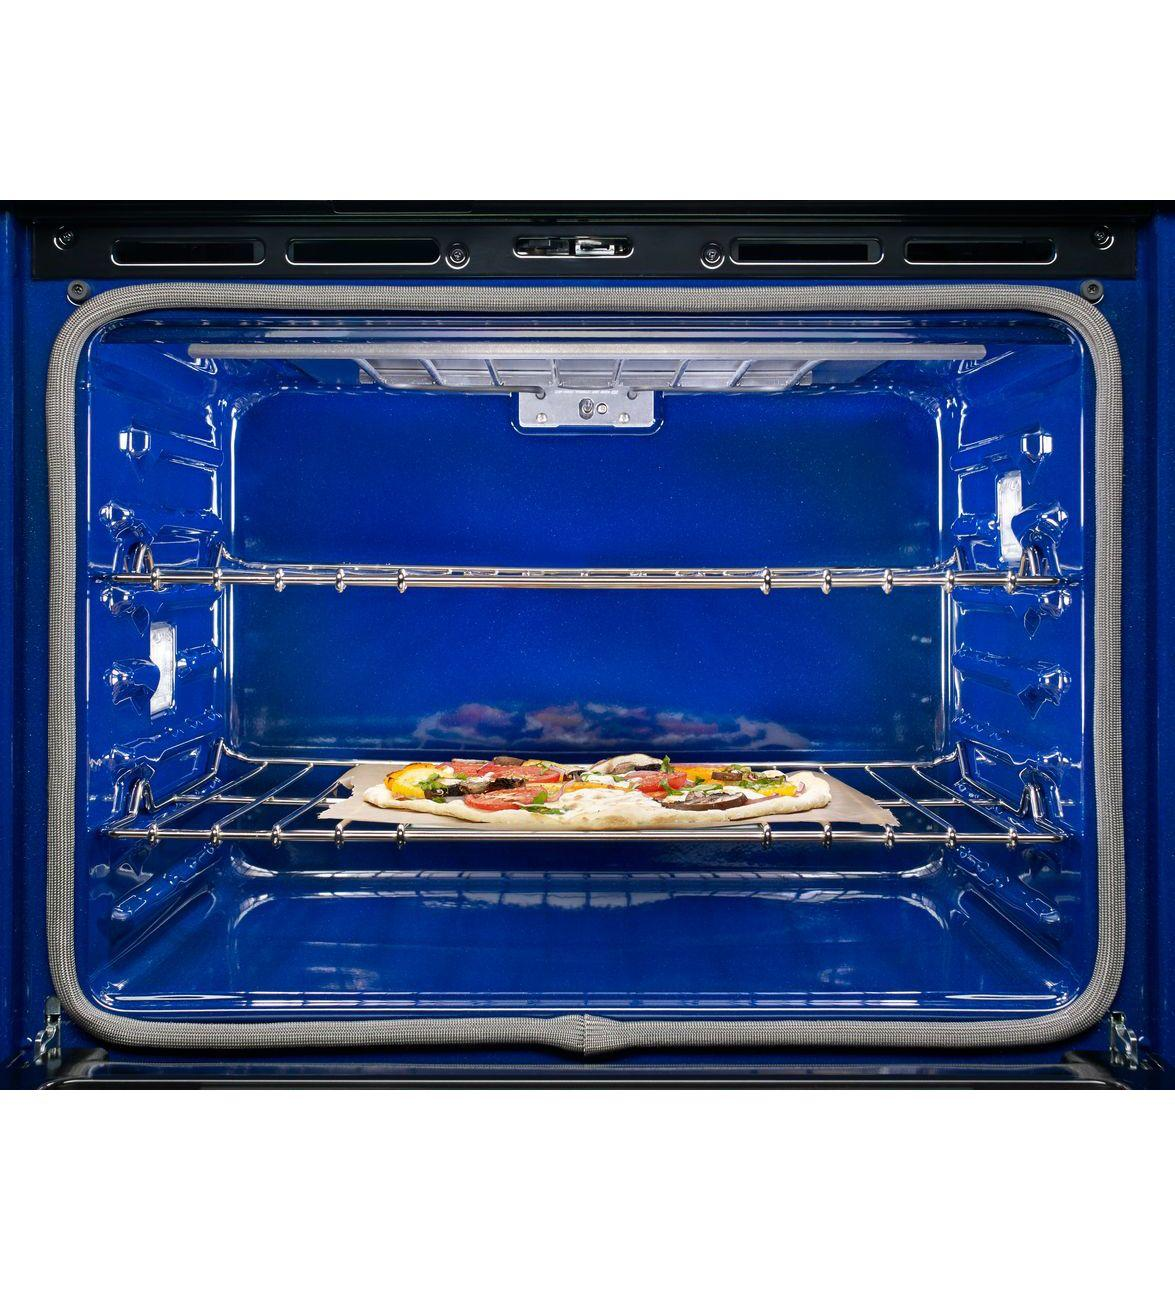 Kitchenaid 30 Inch Double Electric Wall Oven With 5 0 Cu